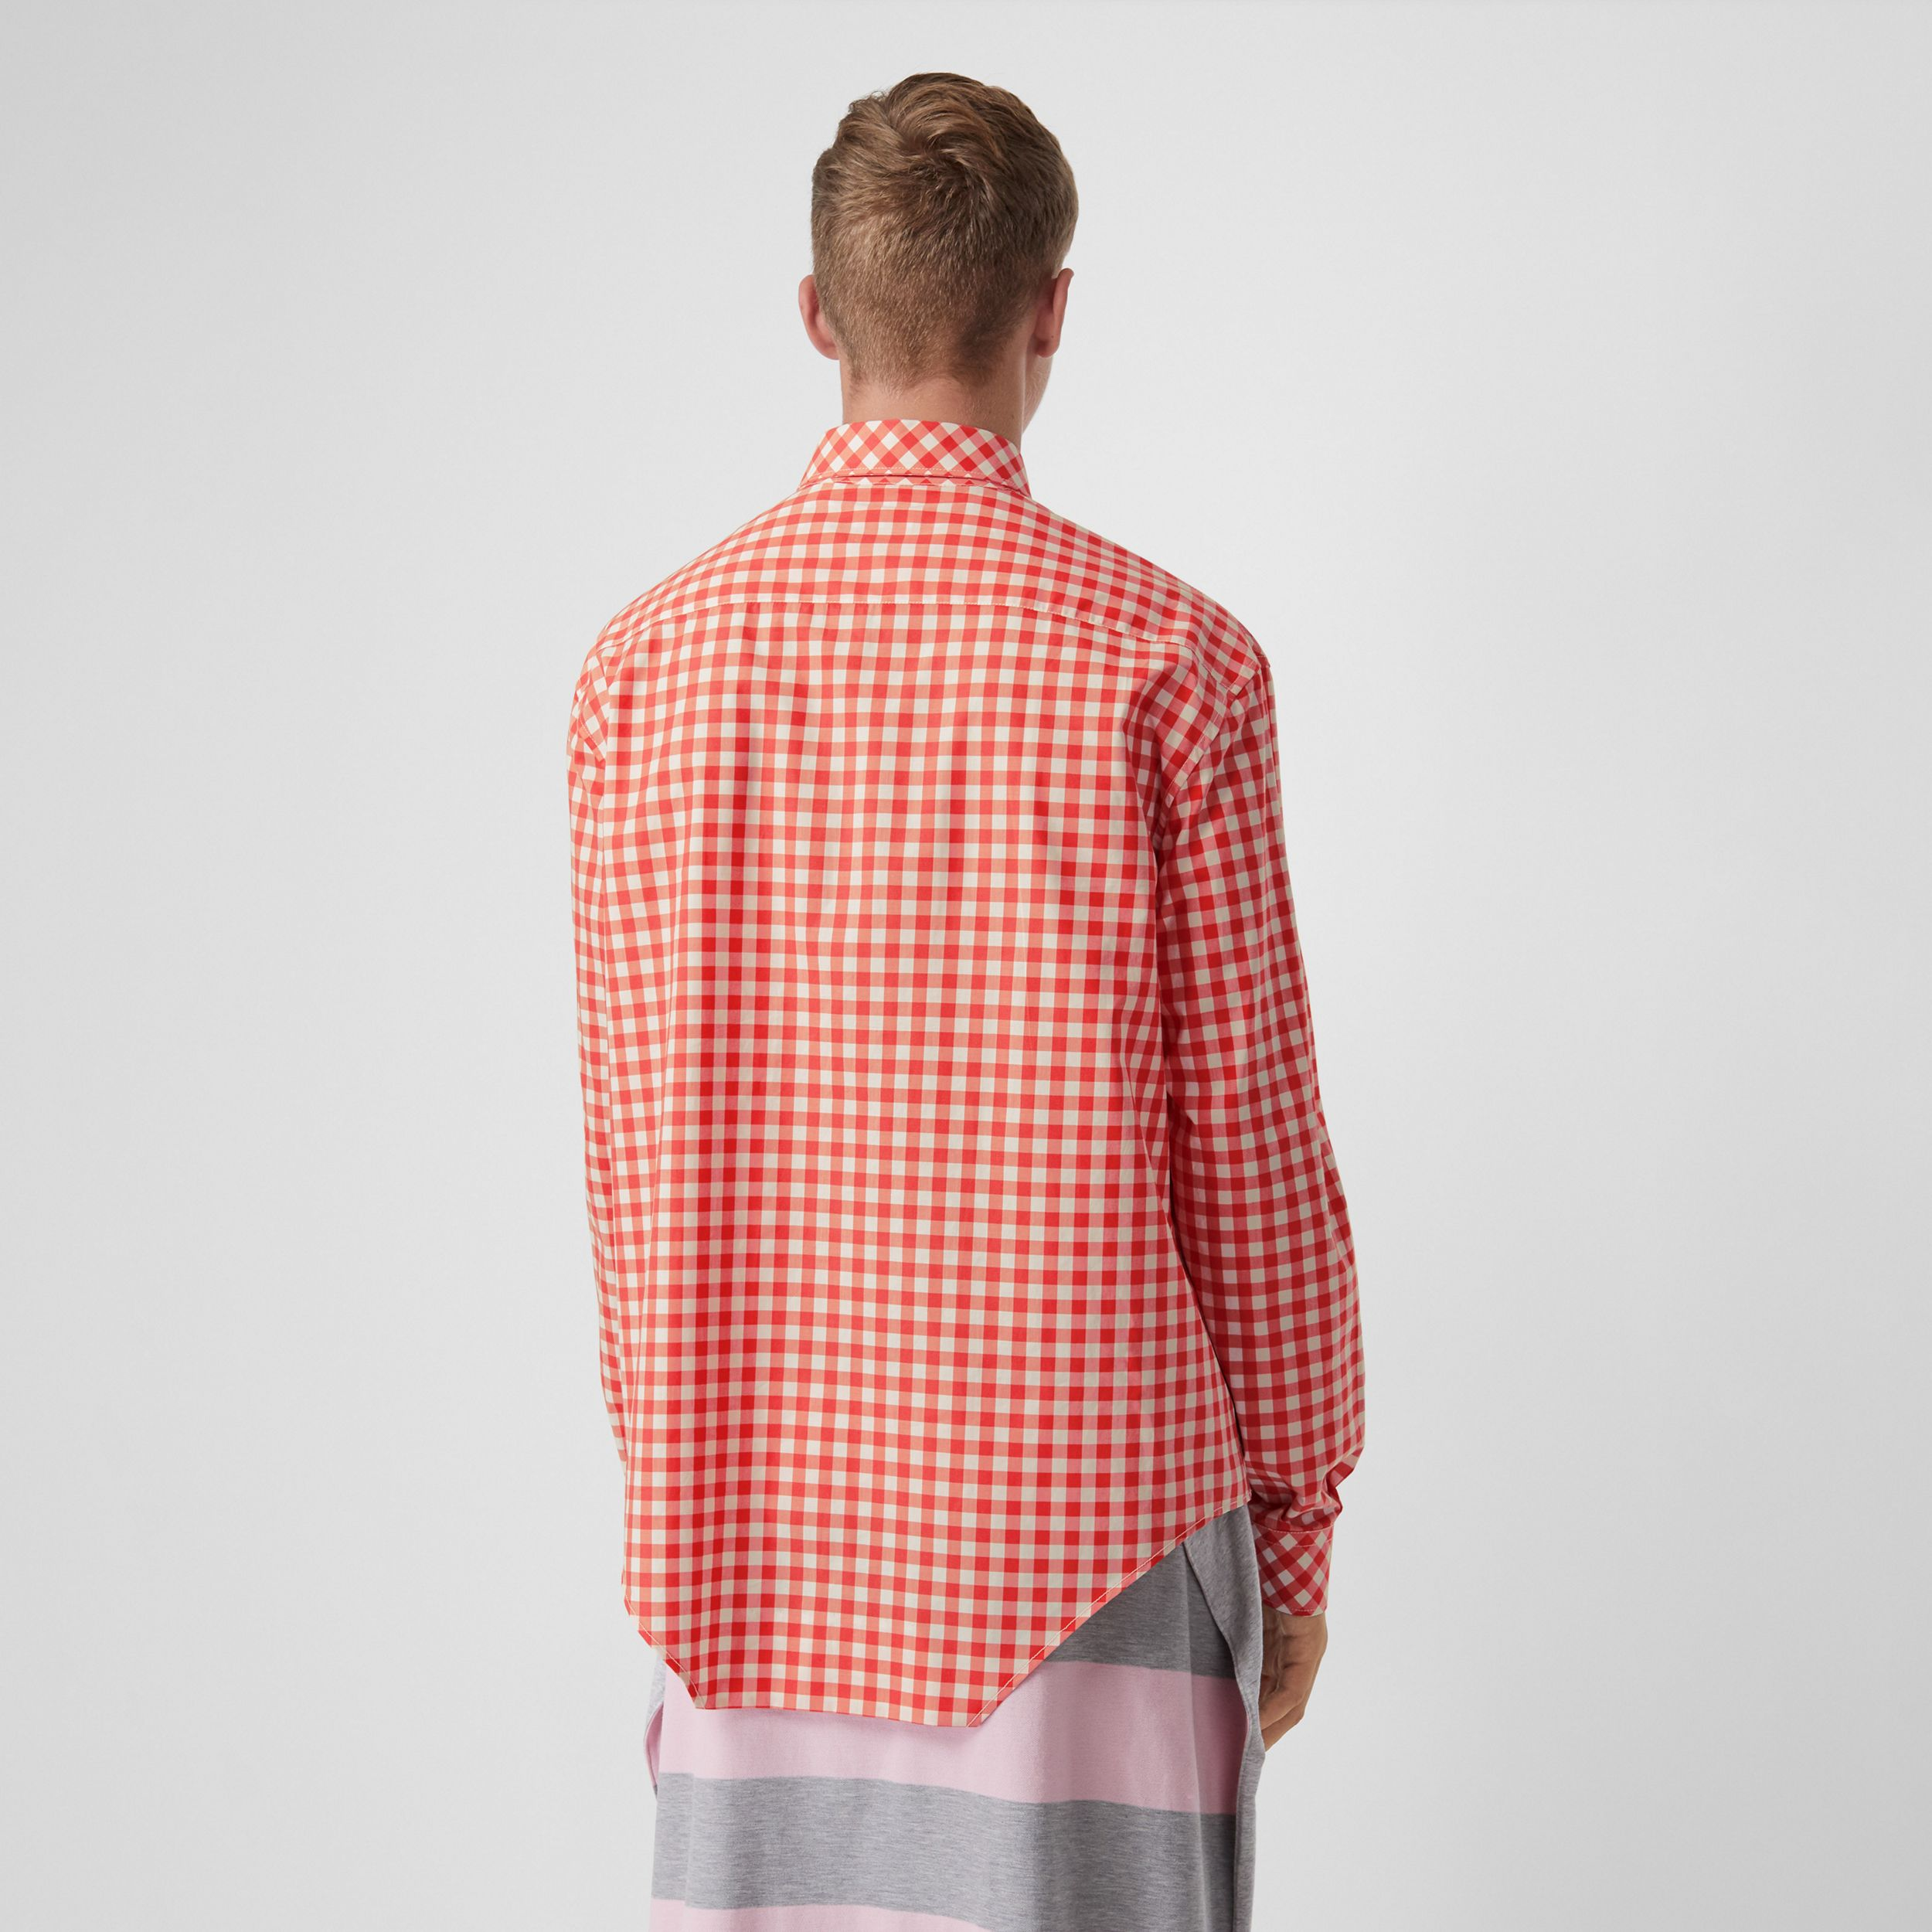 Cut-out Hem Gingham Cotton Oversized Shirt in Red - Men | Burberry - 3